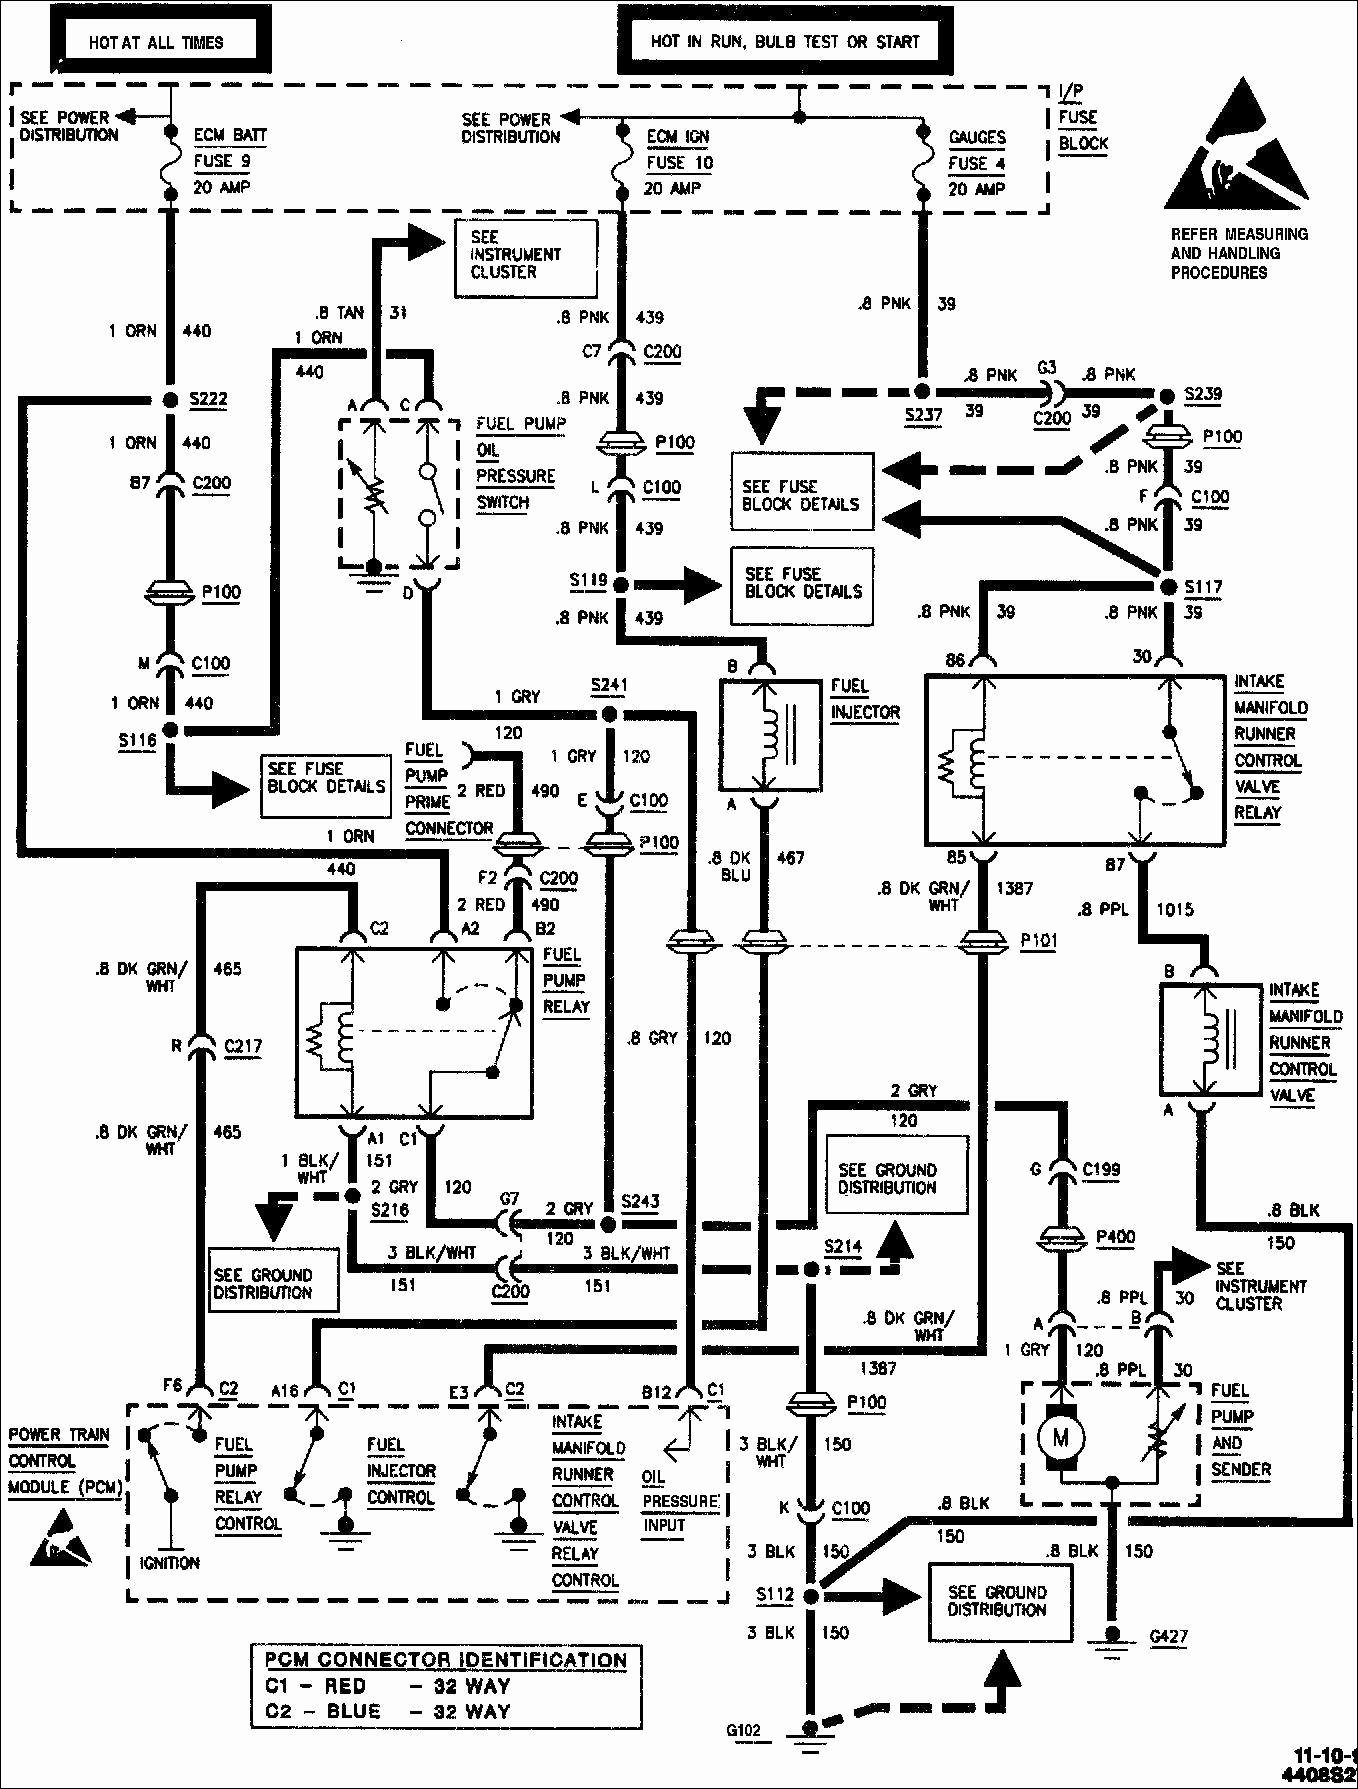 88 Chevy Fuel Pump Relay Diagram Where Is The Fuel Pump